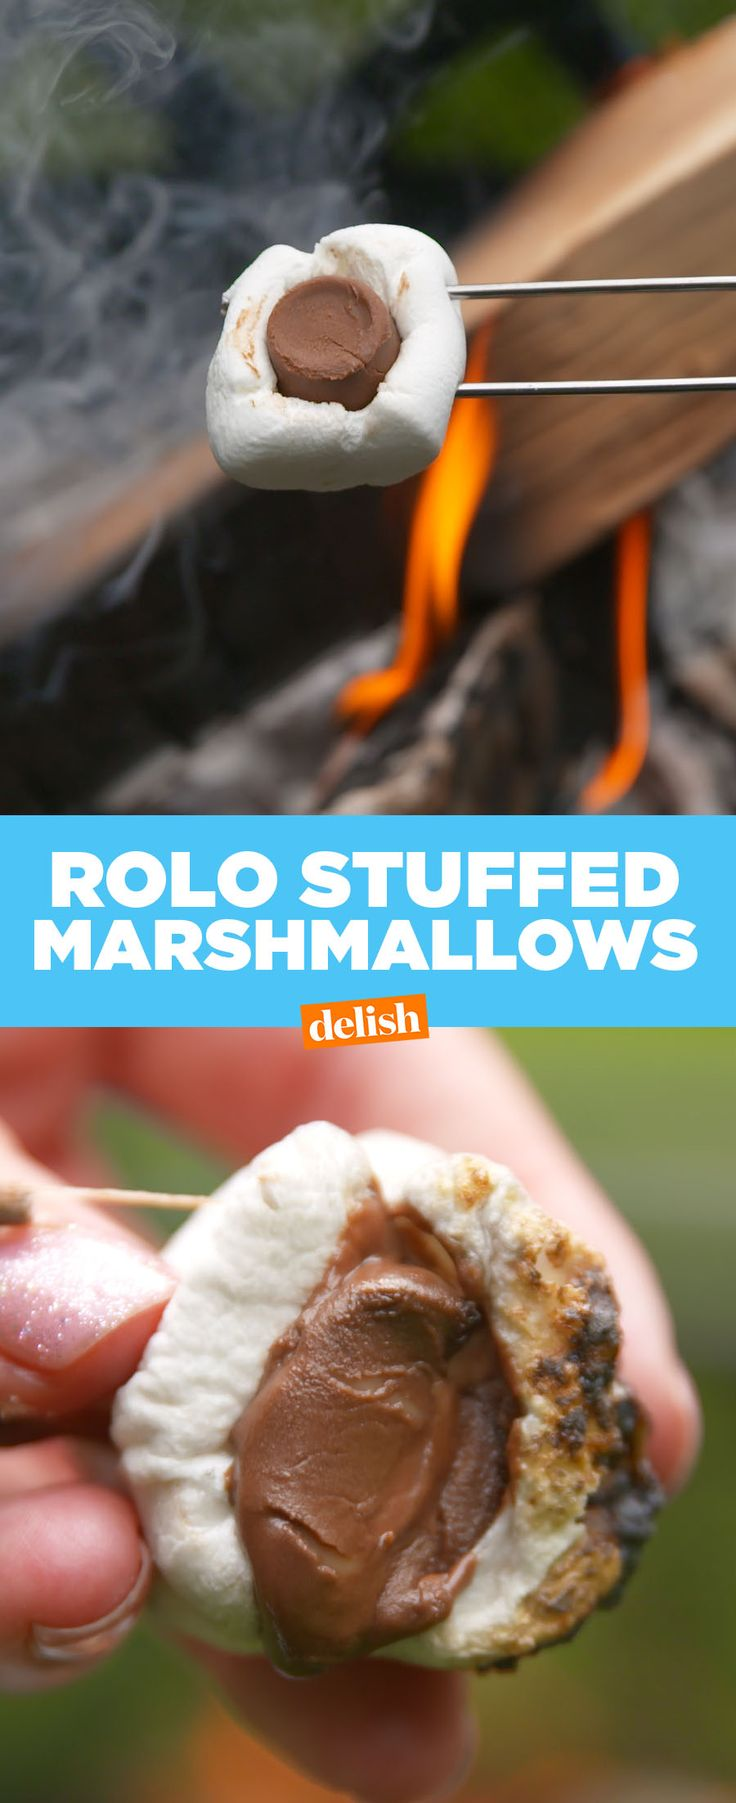 How have we never thought to put this in marshmallows before?! Get the recipe from Delish.com.